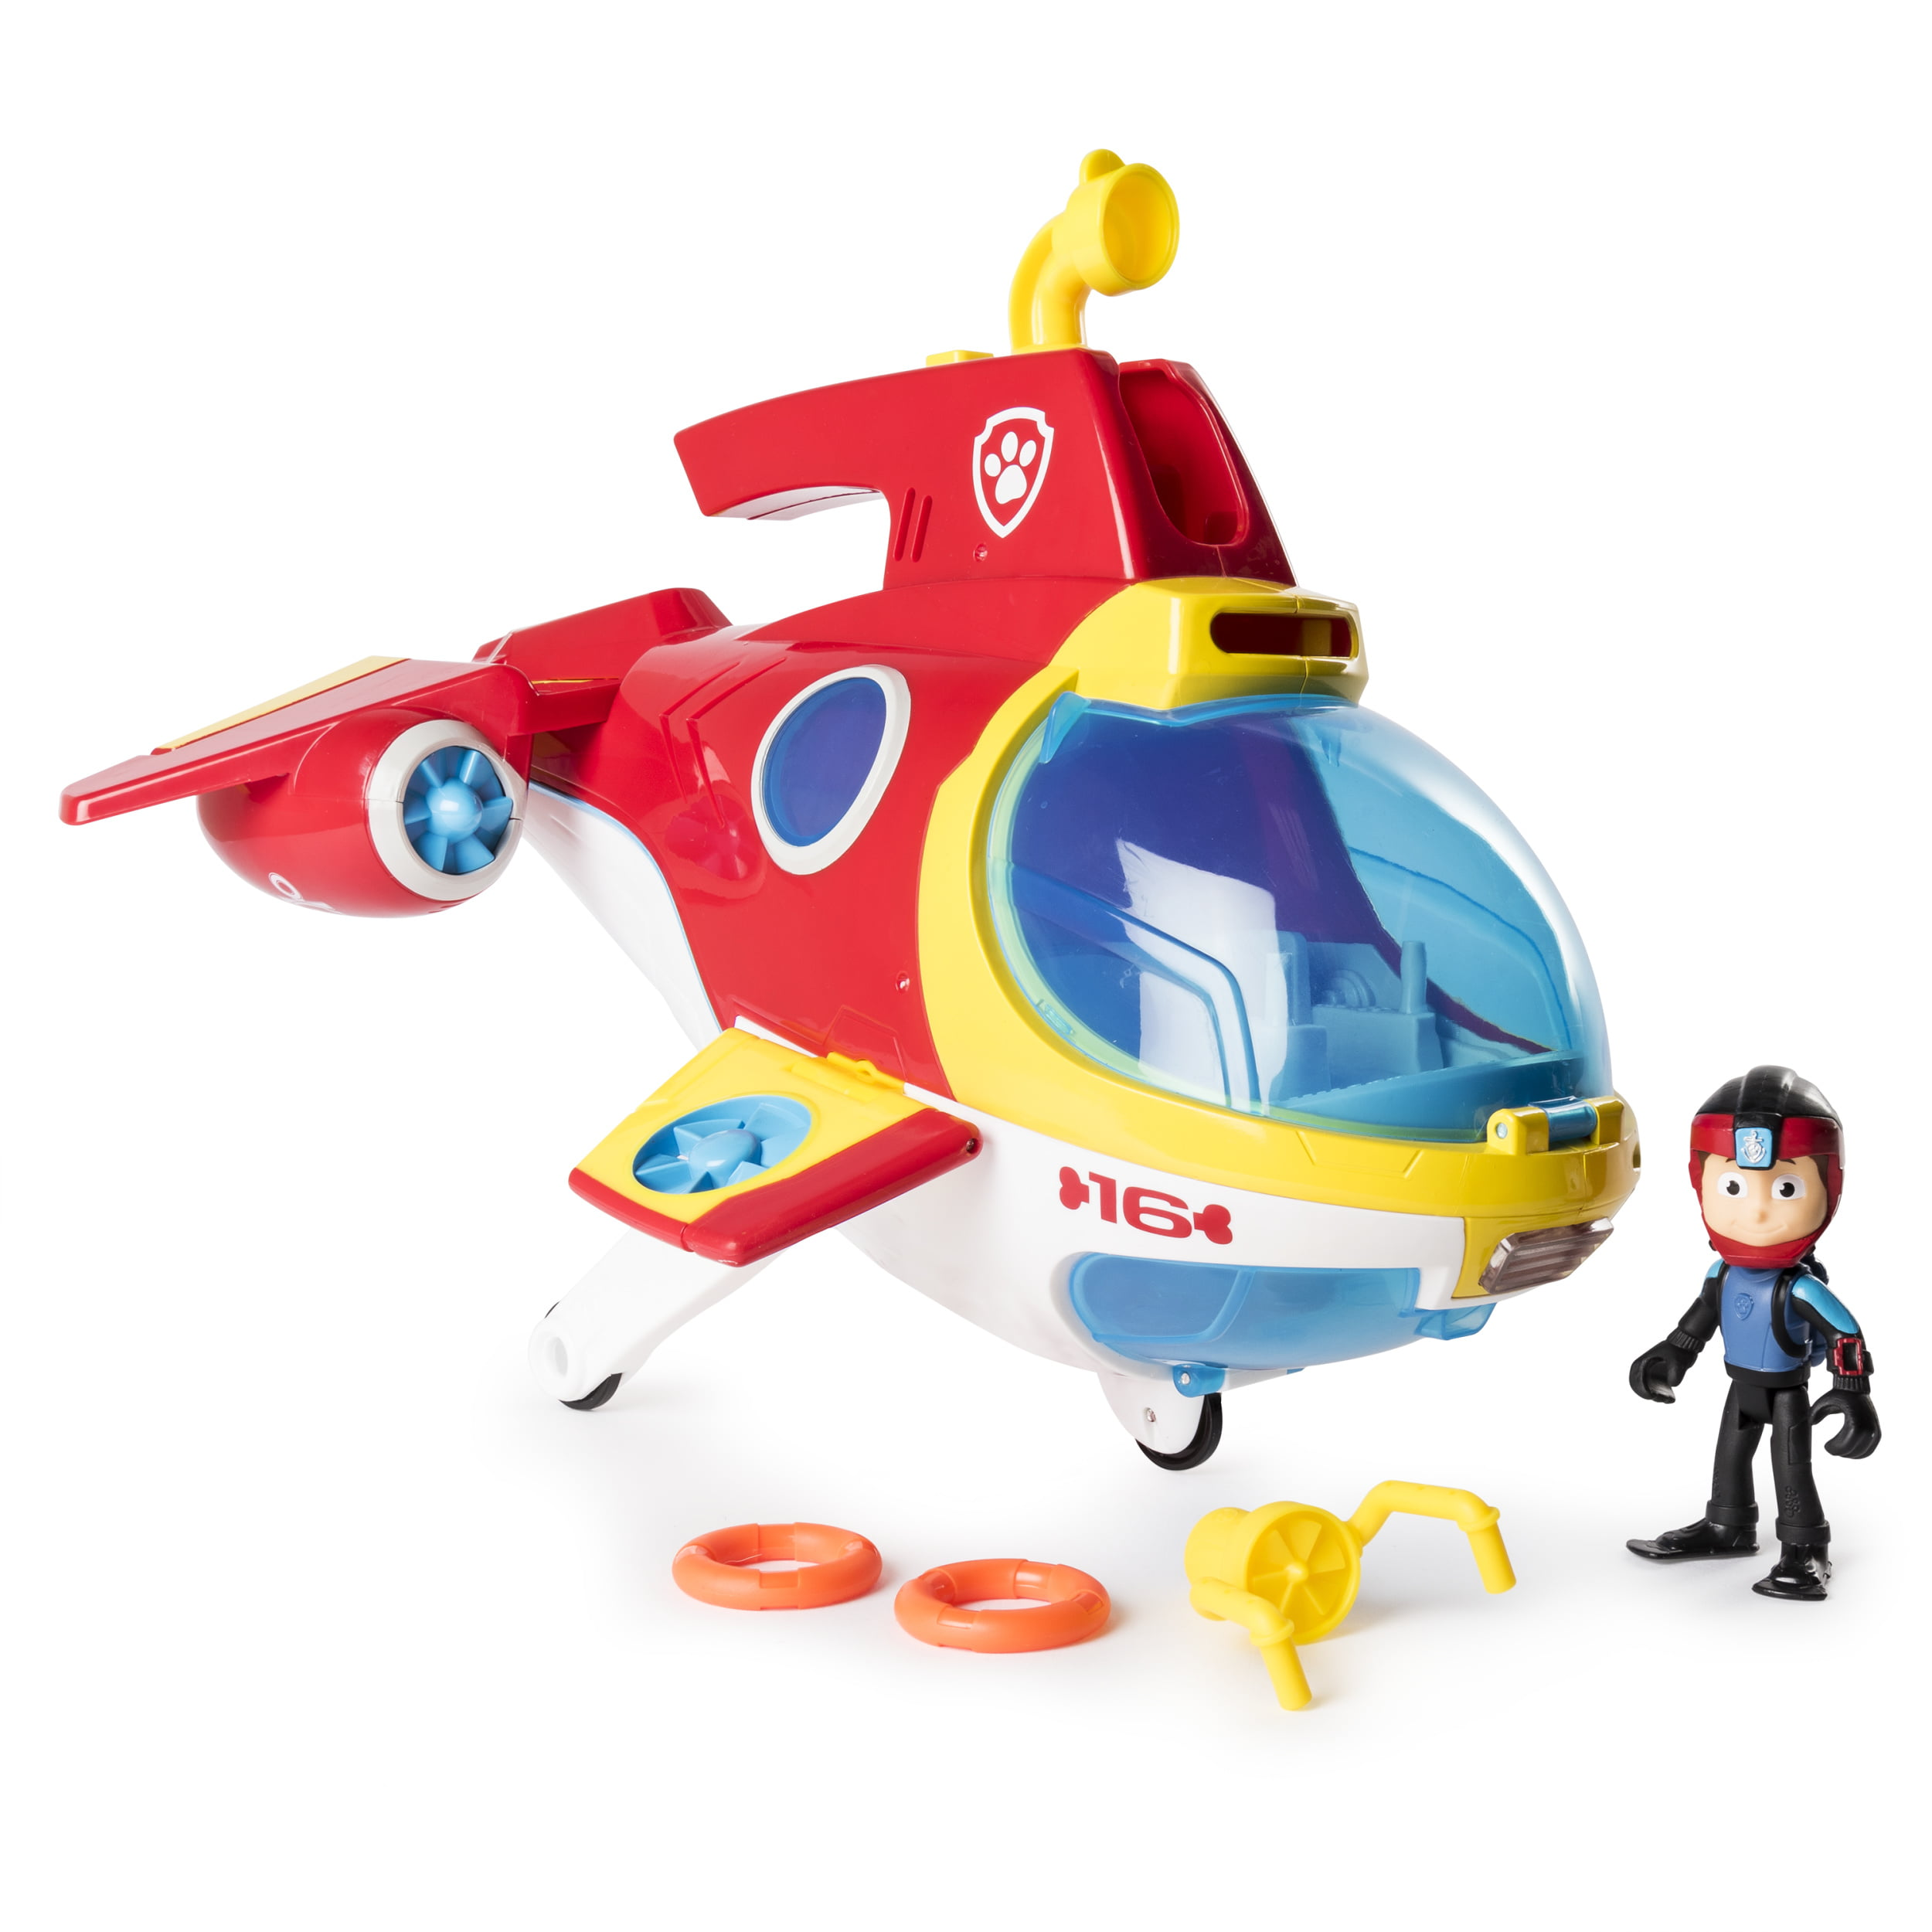 08cfdb8f4f PAW Patrol - Sub Patroller Transforming Vehicle with Lights, Sounds and  Launcher - Walmart.com